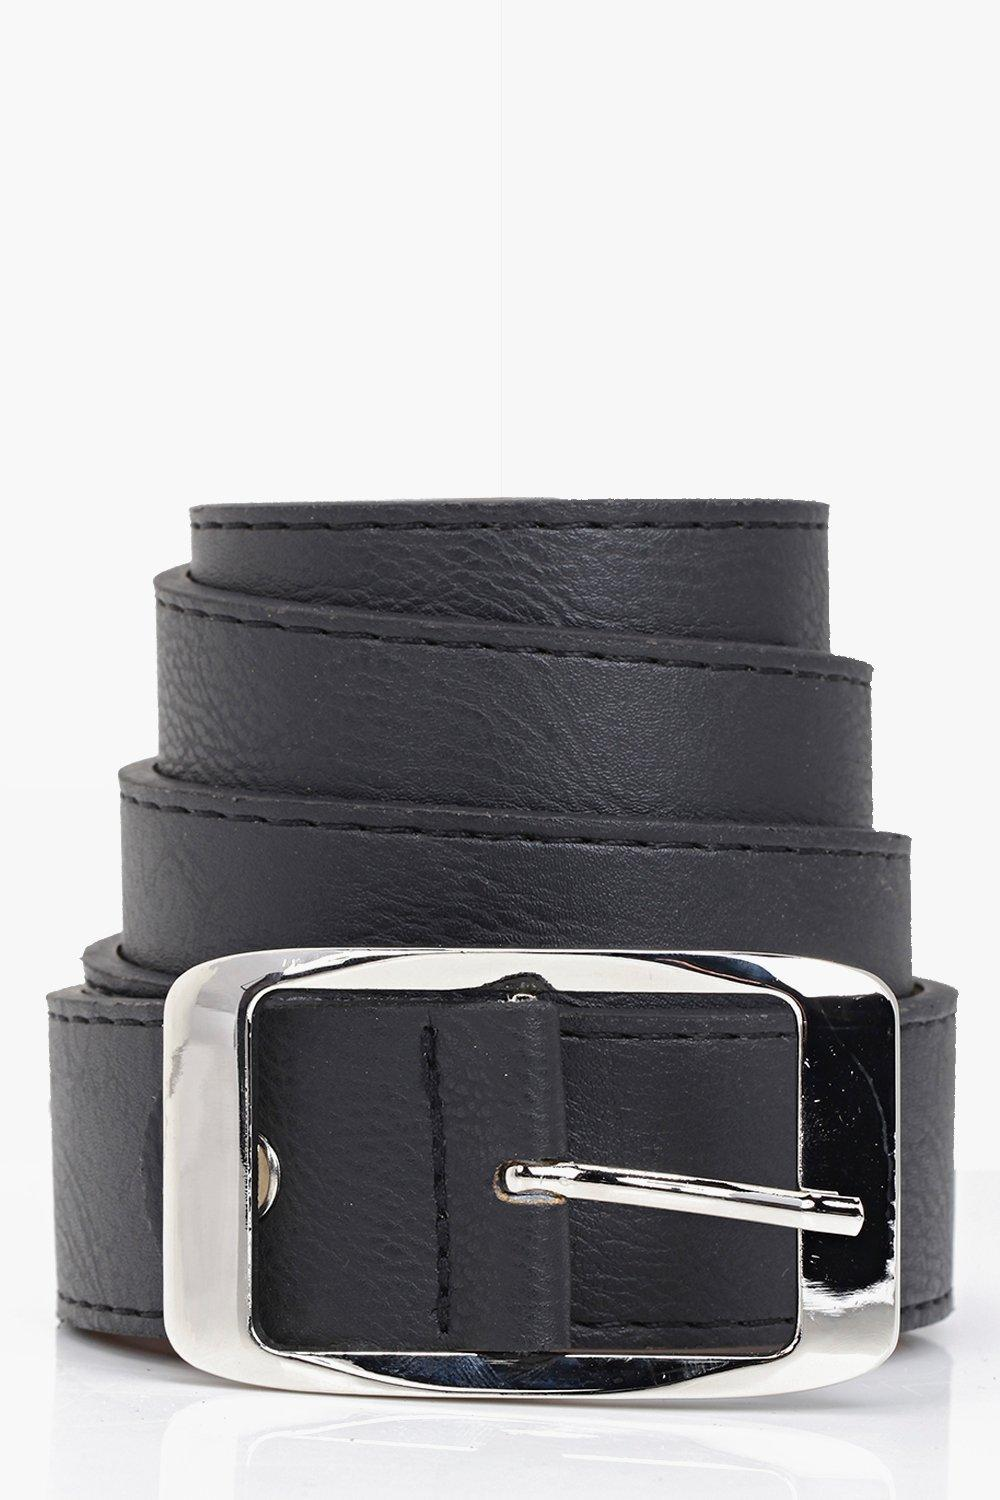 Chunky Boyfriend Belt - black - Customise your out